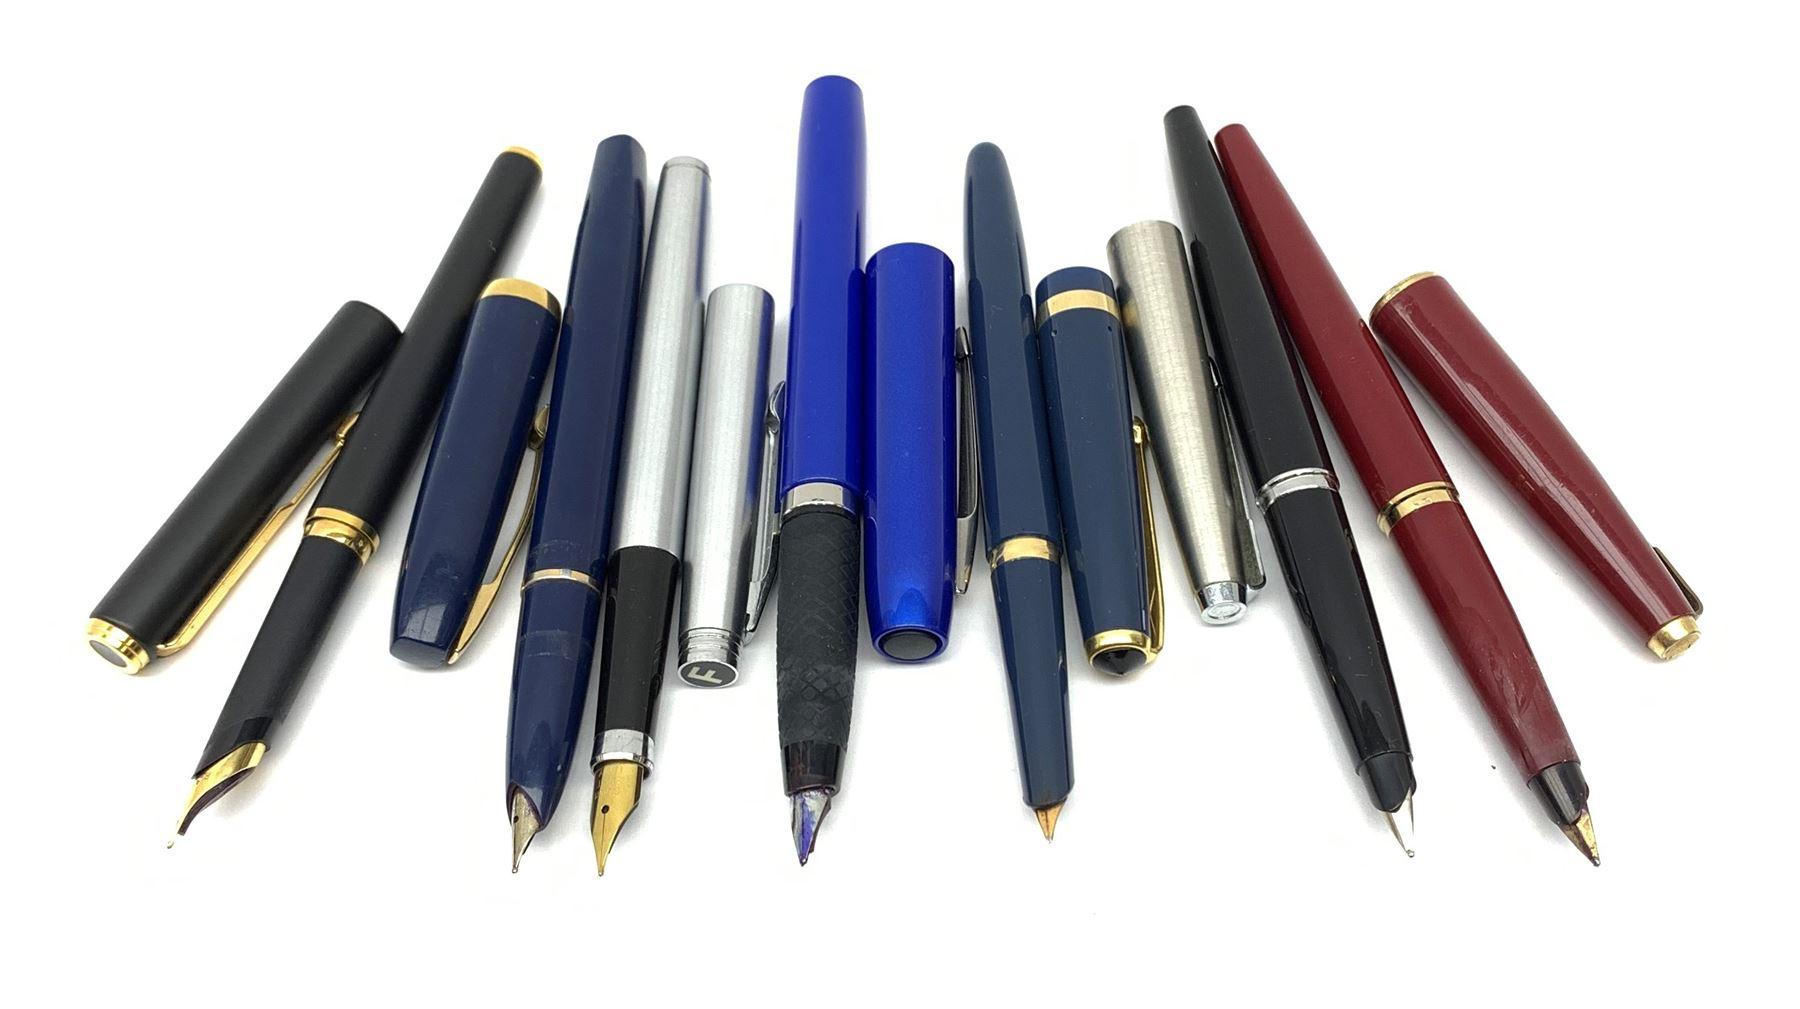 A group of fountain pens